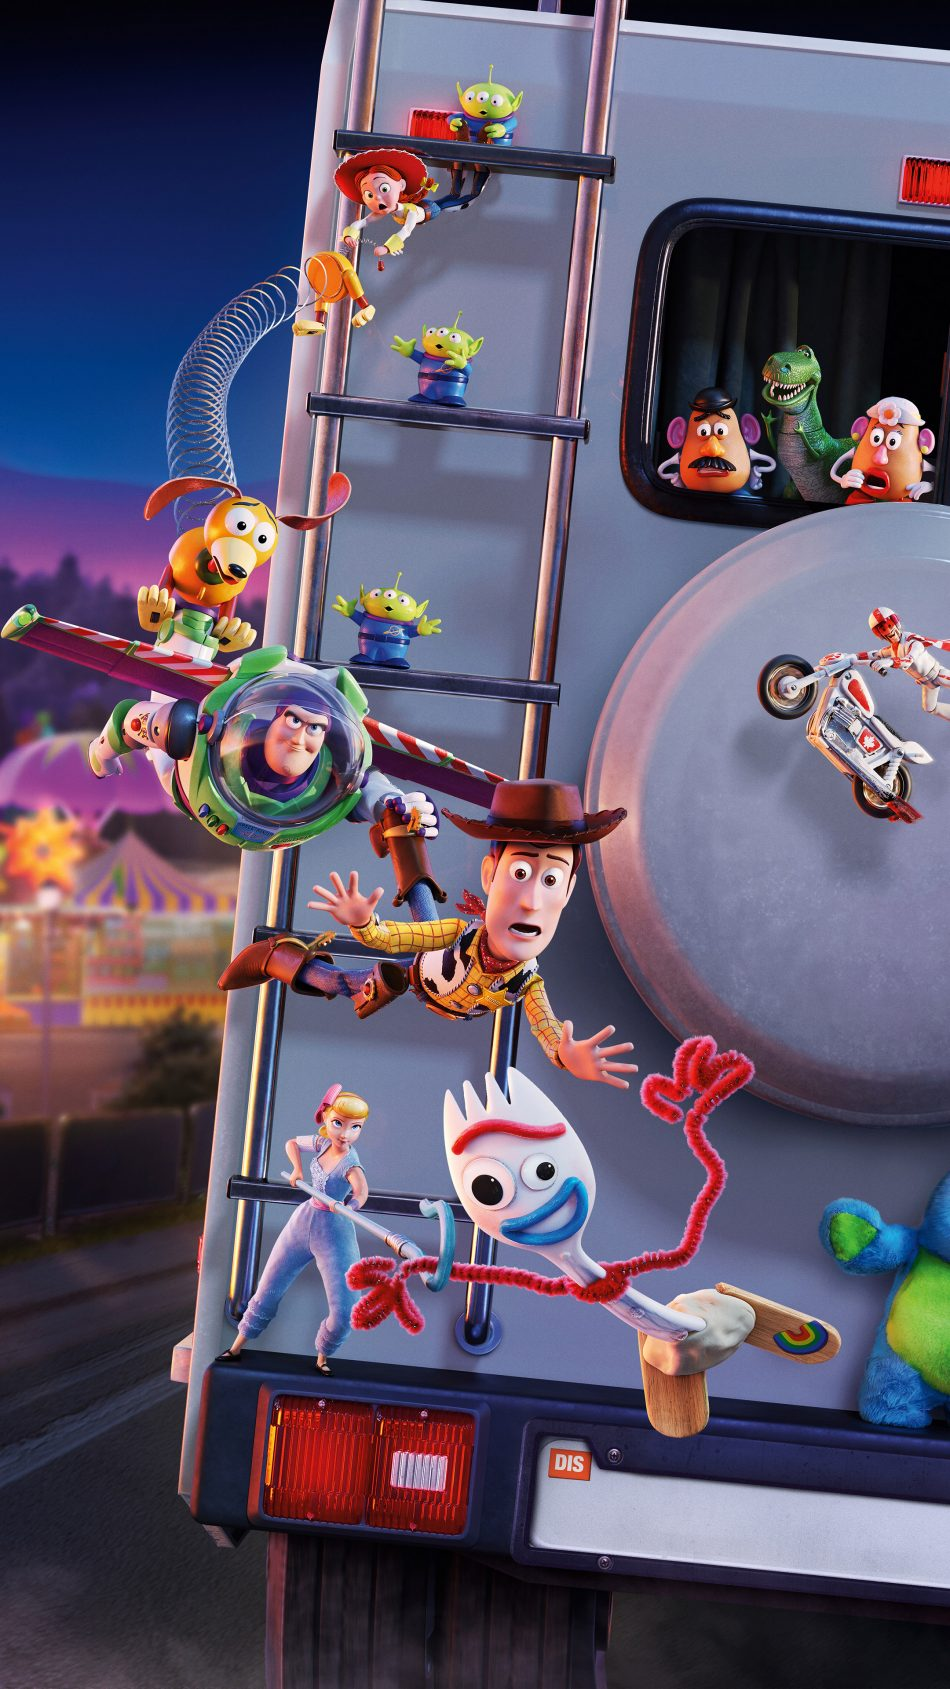 Toy Story 4 2019 Animation 4K Ultra HD Mobile Wallpaper